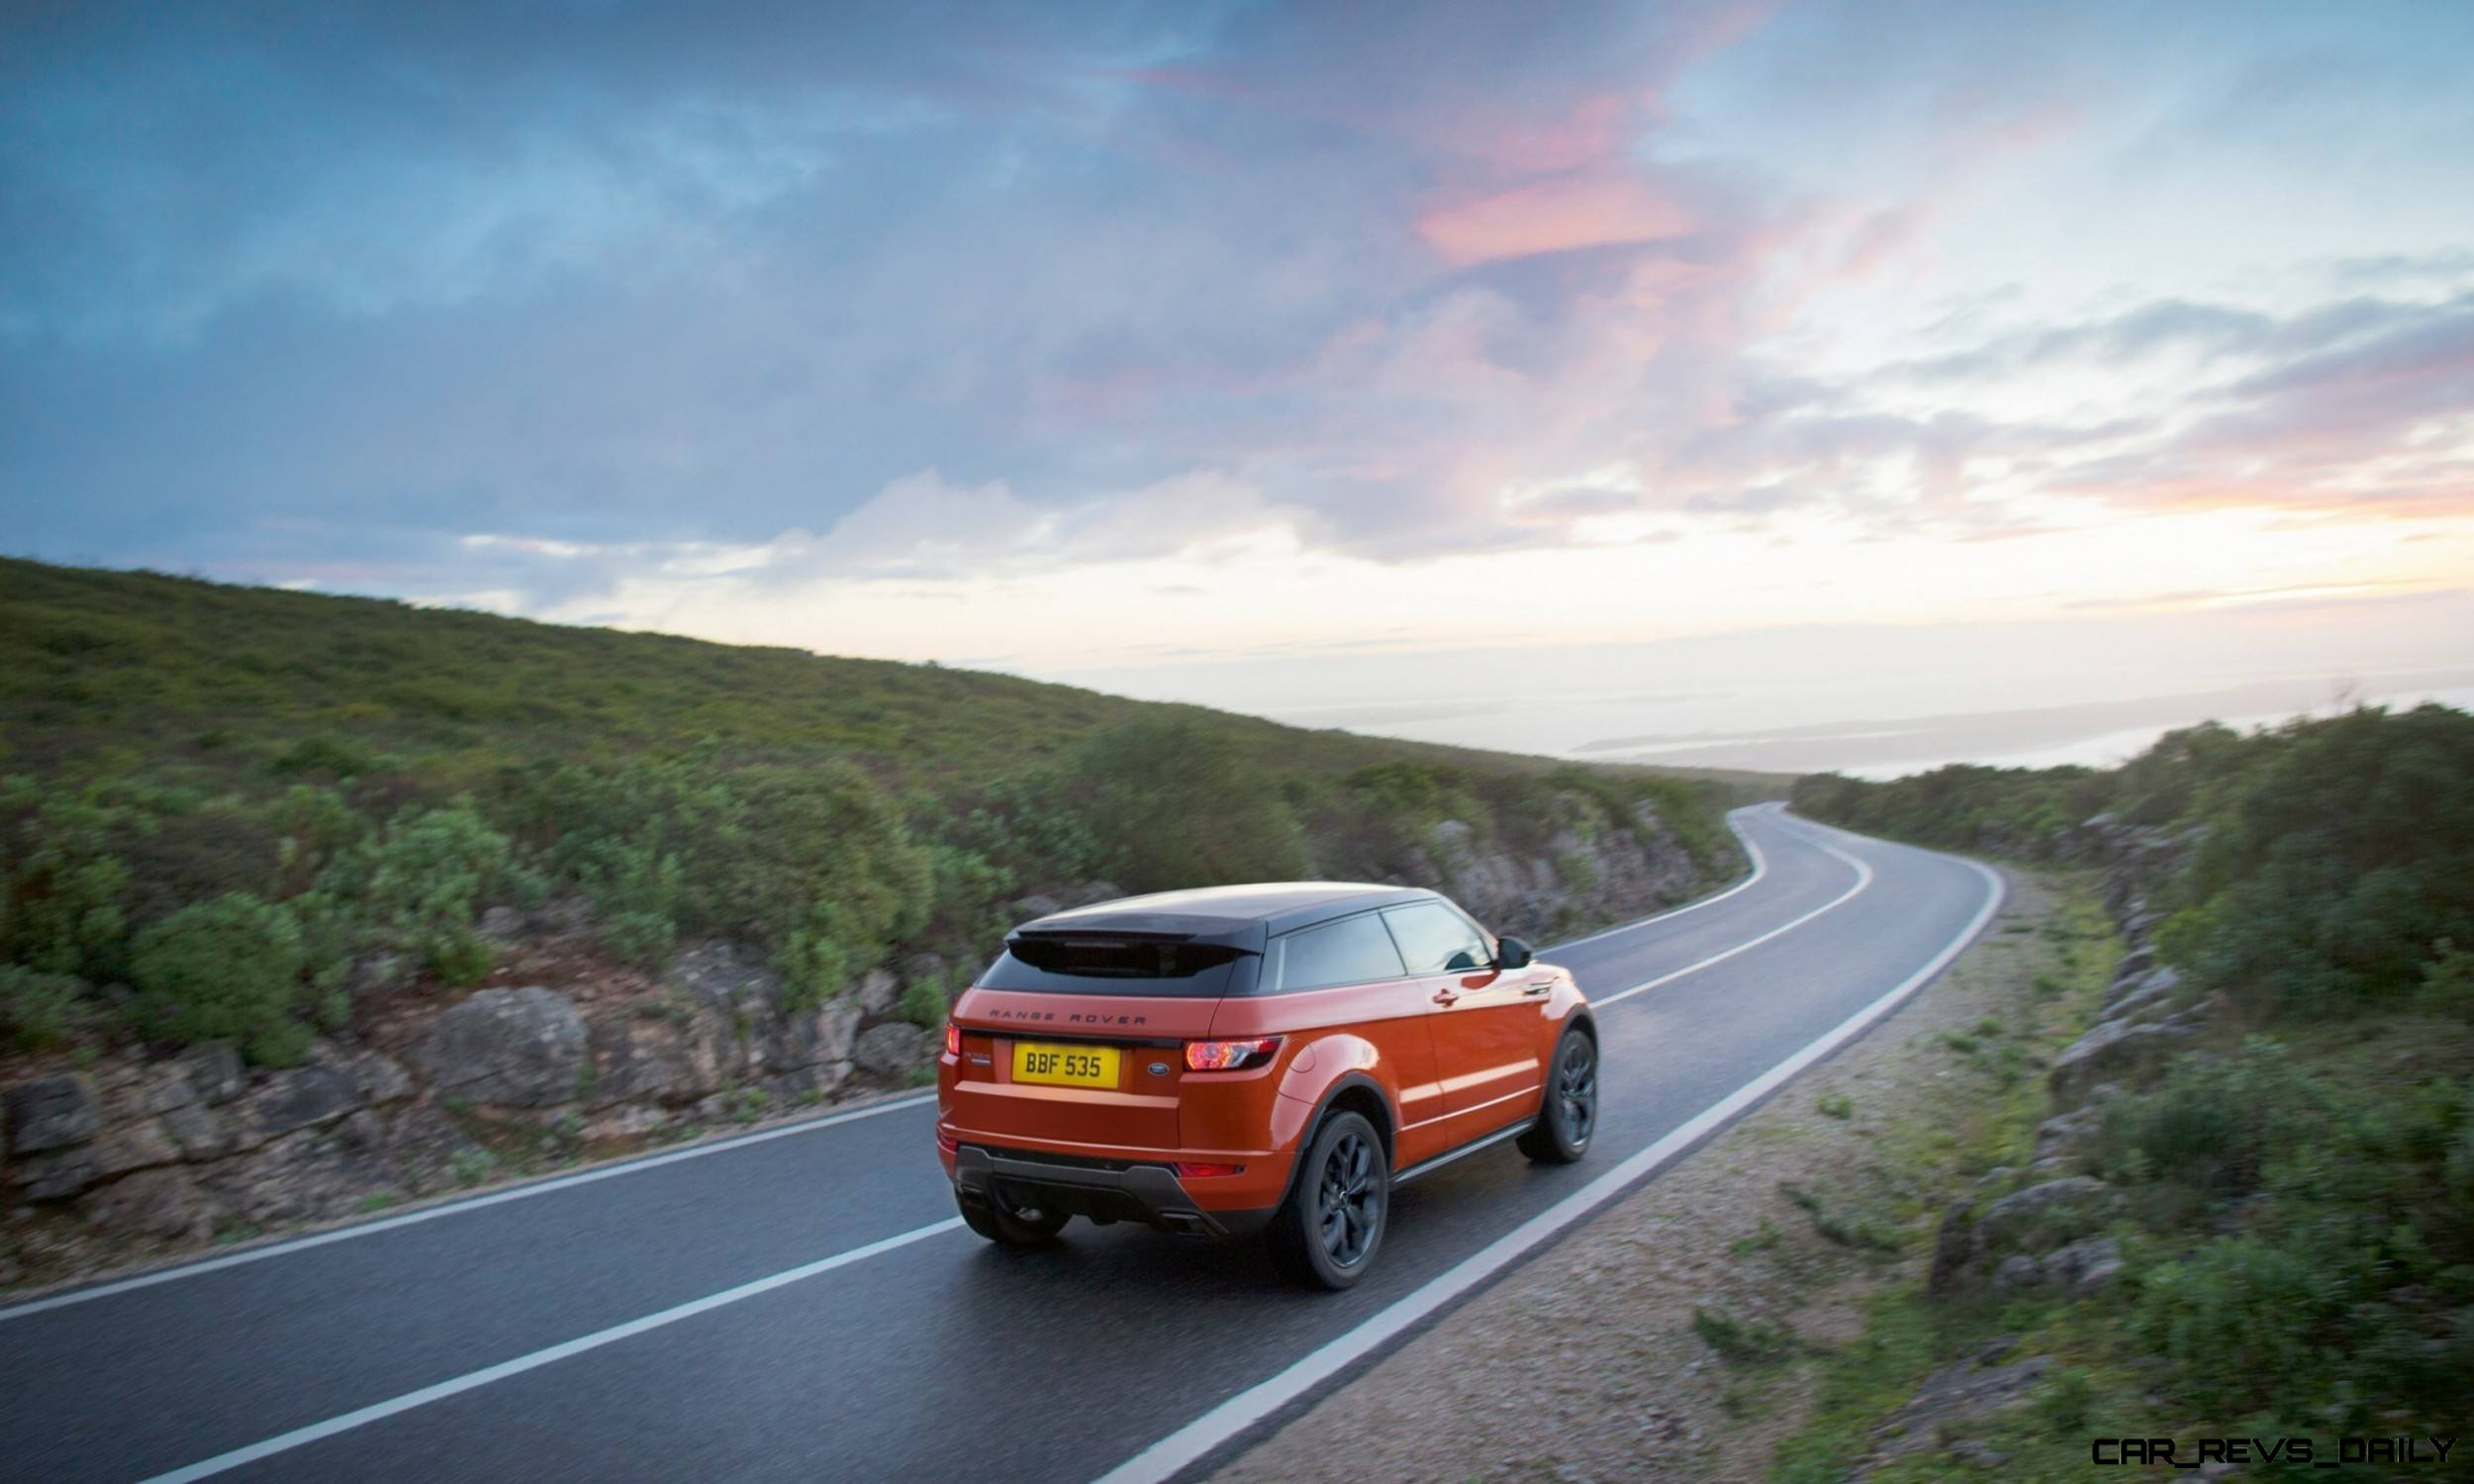 2015 Range Rover Evoque Gains 9-Speed Auto, Refreshed Info Tech and Boosted Engine HP 2015 Range Rover Evoque Gains 9-Speed Auto, Refreshed Info Tech and Boosted Engine HP 2015 Range Rover Evoque Gains 9-Speed Auto, Refreshed Info Tech and Boosted Engine HP 2015 Range Rover Evoque Gains 9-Speed Auto, Refreshed Info Tech and Boosted Engine HP 2015 Range Rover Evoque Gains 9-Speed Auto, Refreshed Info Tech and Boosted Engine HP 2015 Range Rover Evoque Gains 9-Speed Auto, Refreshed Info Tech and Boosted Engine HP 2015 Range Rover Evoque Gains 9-Speed Auto, Refreshed Info Tech and Boosted Engine HP 2015 Range Rover Evoque Gains 9-Speed Auto, Refreshed Info Tech and Boosted Engine HP 2015 Range Rover Evoque Gains 9-Speed Auto, Refreshed Info Tech and Boosted Engine HP 2015 Range Rover Evoque Gains 9-Speed Auto, Refreshed Info Tech and Boosted Engine HP 2015 Range Rover Evoque Gains 9-Speed Auto, Refreshed Info Tech and Boosted Engine HP 2015 Range Rover Evoque Gains 9-Speed Auto, Refreshed Info Tech and Boosted Engine HP 2015 Range Rover Evoque Gains 9-Speed Auto, Refreshed Info Tech and Boosted Engine HP 2015 Range Rover Evoque Gains 9-Speed Auto, Refreshed Info Tech and Boosted Engine HP 2015 Range Rover Evoque Gains 9-Speed Auto, Refreshed Info Tech and Boosted Engine HP 2015 Range Rover Evoque Gains 9-Speed Auto, Refreshed Info Tech and Boosted Engine HP 2015 Range Rover Evoque Gains 9-Speed Auto, Refreshed Info Tech and Boosted Engine HP 2015 Range Rover Evoque Gains 9-Speed Auto, Refreshed Info Tech and Boosted Engine HP 2015 Range Rover Evoque Gains 9-Speed Auto, Refreshed Info Tech and Boosted Engine HP 2015 Range Rover Evoque Gains 9-Speed Auto, Refreshed Info Tech and Boosted Engine HP 2015 Range Rover Evoque Gains 9-Speed Auto, Refreshed Info Tech and Boosted Engine HP 2015 Range Rover Evoque Gains 9-Speed Auto, Refreshed Info Tech and Boosted Engine HP 2015 Range Rover Evoque Gains 9-Speed Auto, Refreshed Info Tech and Boosted Engine HP 2015 Range Rover Evoque Gains 9-Speed Auto, Refreshed Info Tech and Boosted Engine HP 2015 Range Rover Evoque Gains 9-Speed Auto, Refreshed Info Tech and Boosted Engine HP 2015 Range Rover Evoque Gains 9-Speed Auto, Refreshed Info Tech and Boosted Engine HP 2015 Range Rover Evoque Gains 9-Speed Auto, Refreshed Info Tech and Boosted Engine HP 2015 Range Rover Evoque Gains 9-Speed Auto, Refreshed Info Tech and Boosted Engine HP 2015 Range Rover Evoque Gains 9-Speed Auto, Refreshed Info Tech and Boosted Engine HP 2015 Range Rover Evoque Gains 9-Speed Auto, Refreshed Info Tech and Boosted Engine HP 2015 Range Rover Evoque Gains 9-Speed Auto, Refreshed Info Tech and Boosted Engine HP 2015 Range Rover Evoque Gains 9-Speed Auto, Refreshed Info Tech and Boosted Engine HP